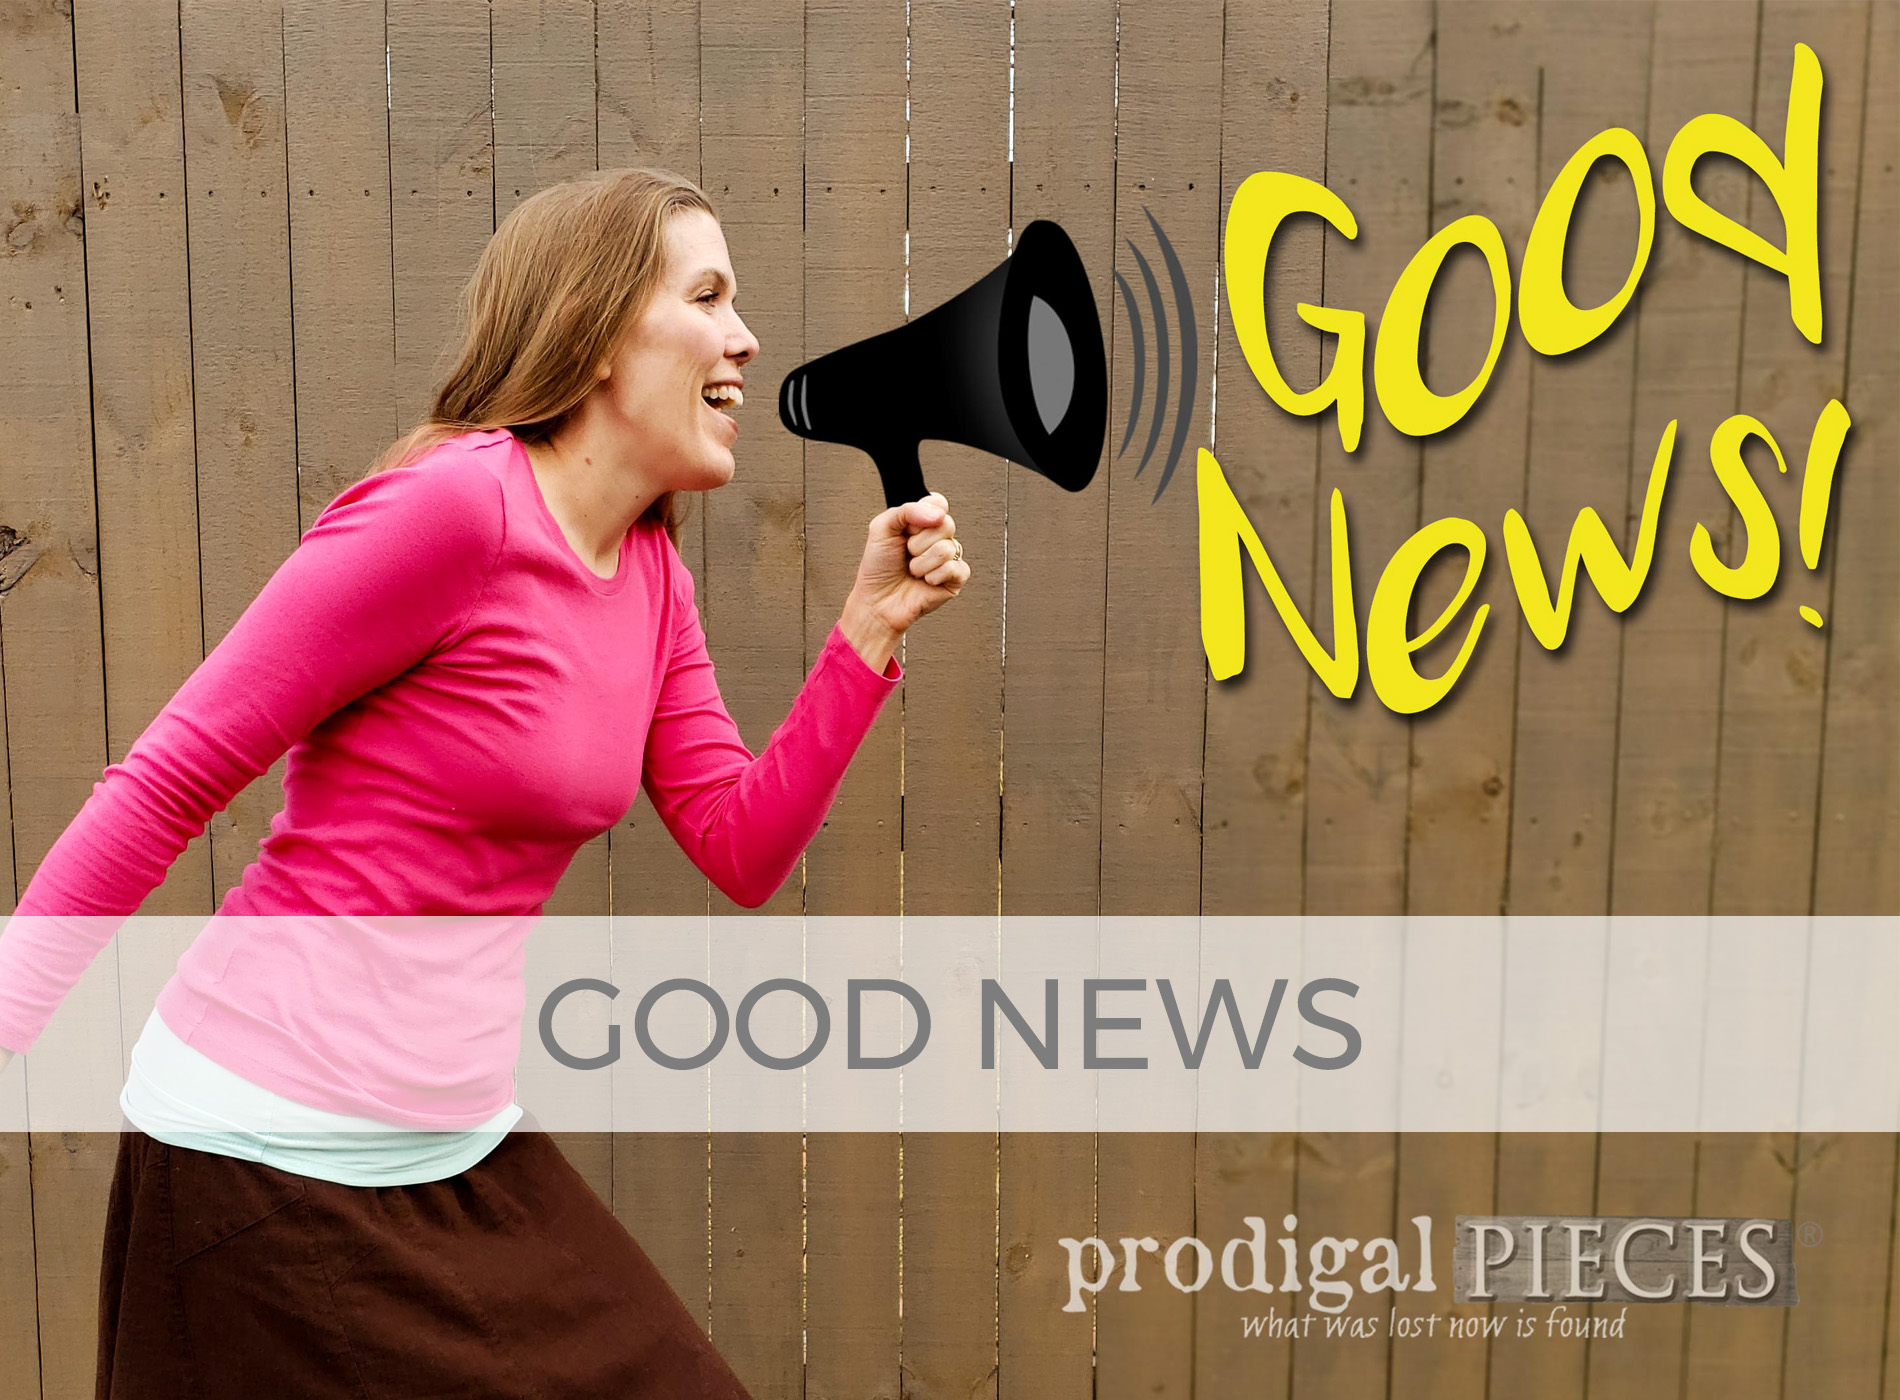 There is Good News in Speaking the Truth | prodigalpieces.com